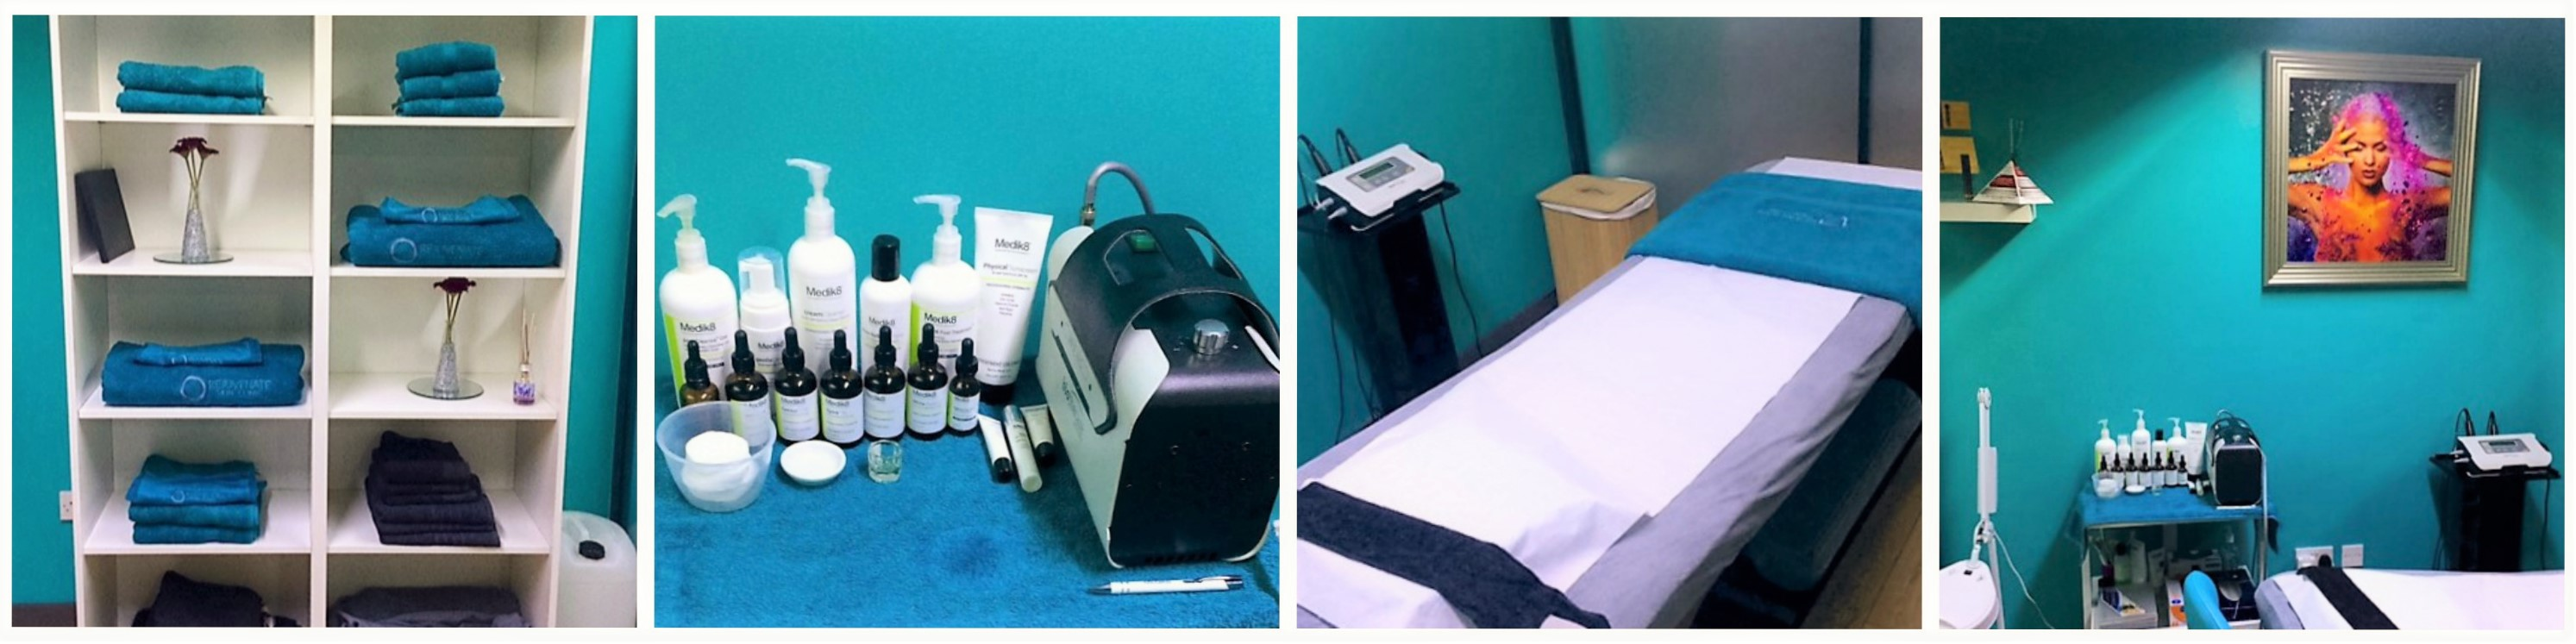 Enhancing natural beauty at Rejuvenate Skin Clinic